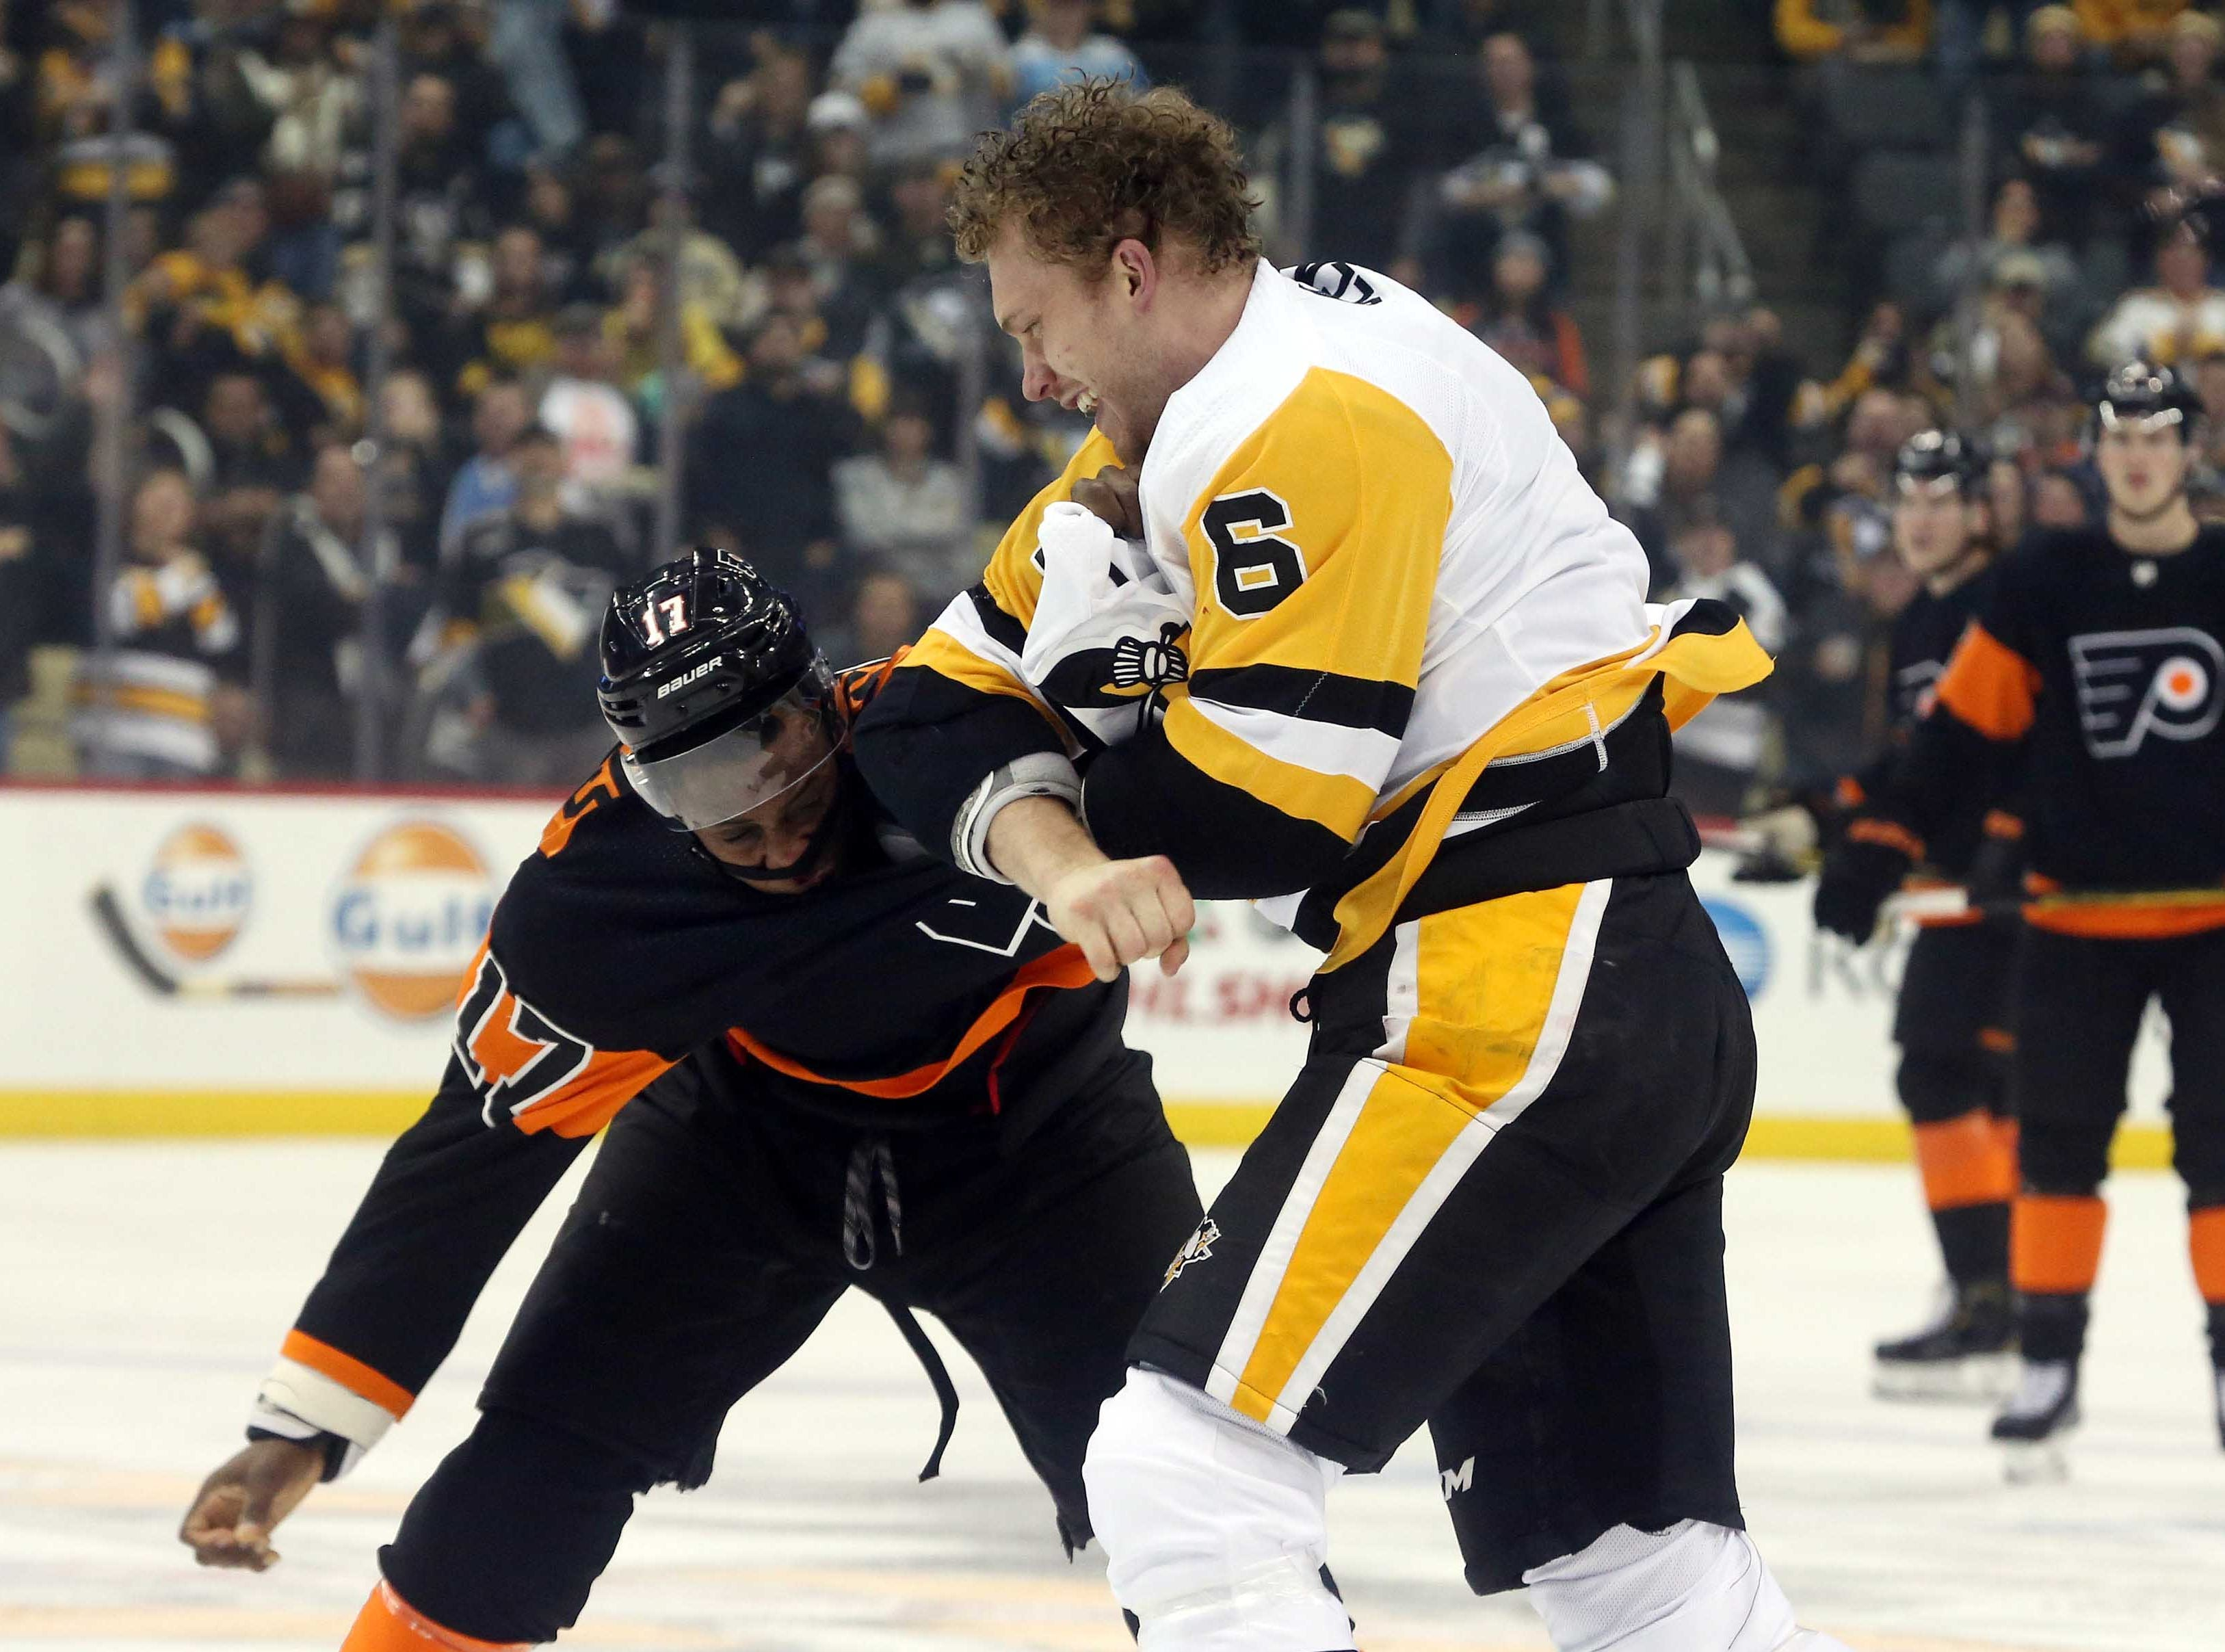 Dec. 1: Philadelphia Flyers' Wayne Simmonds vs. Pittsburgh Penguins' Jamie Oleksiak (6).